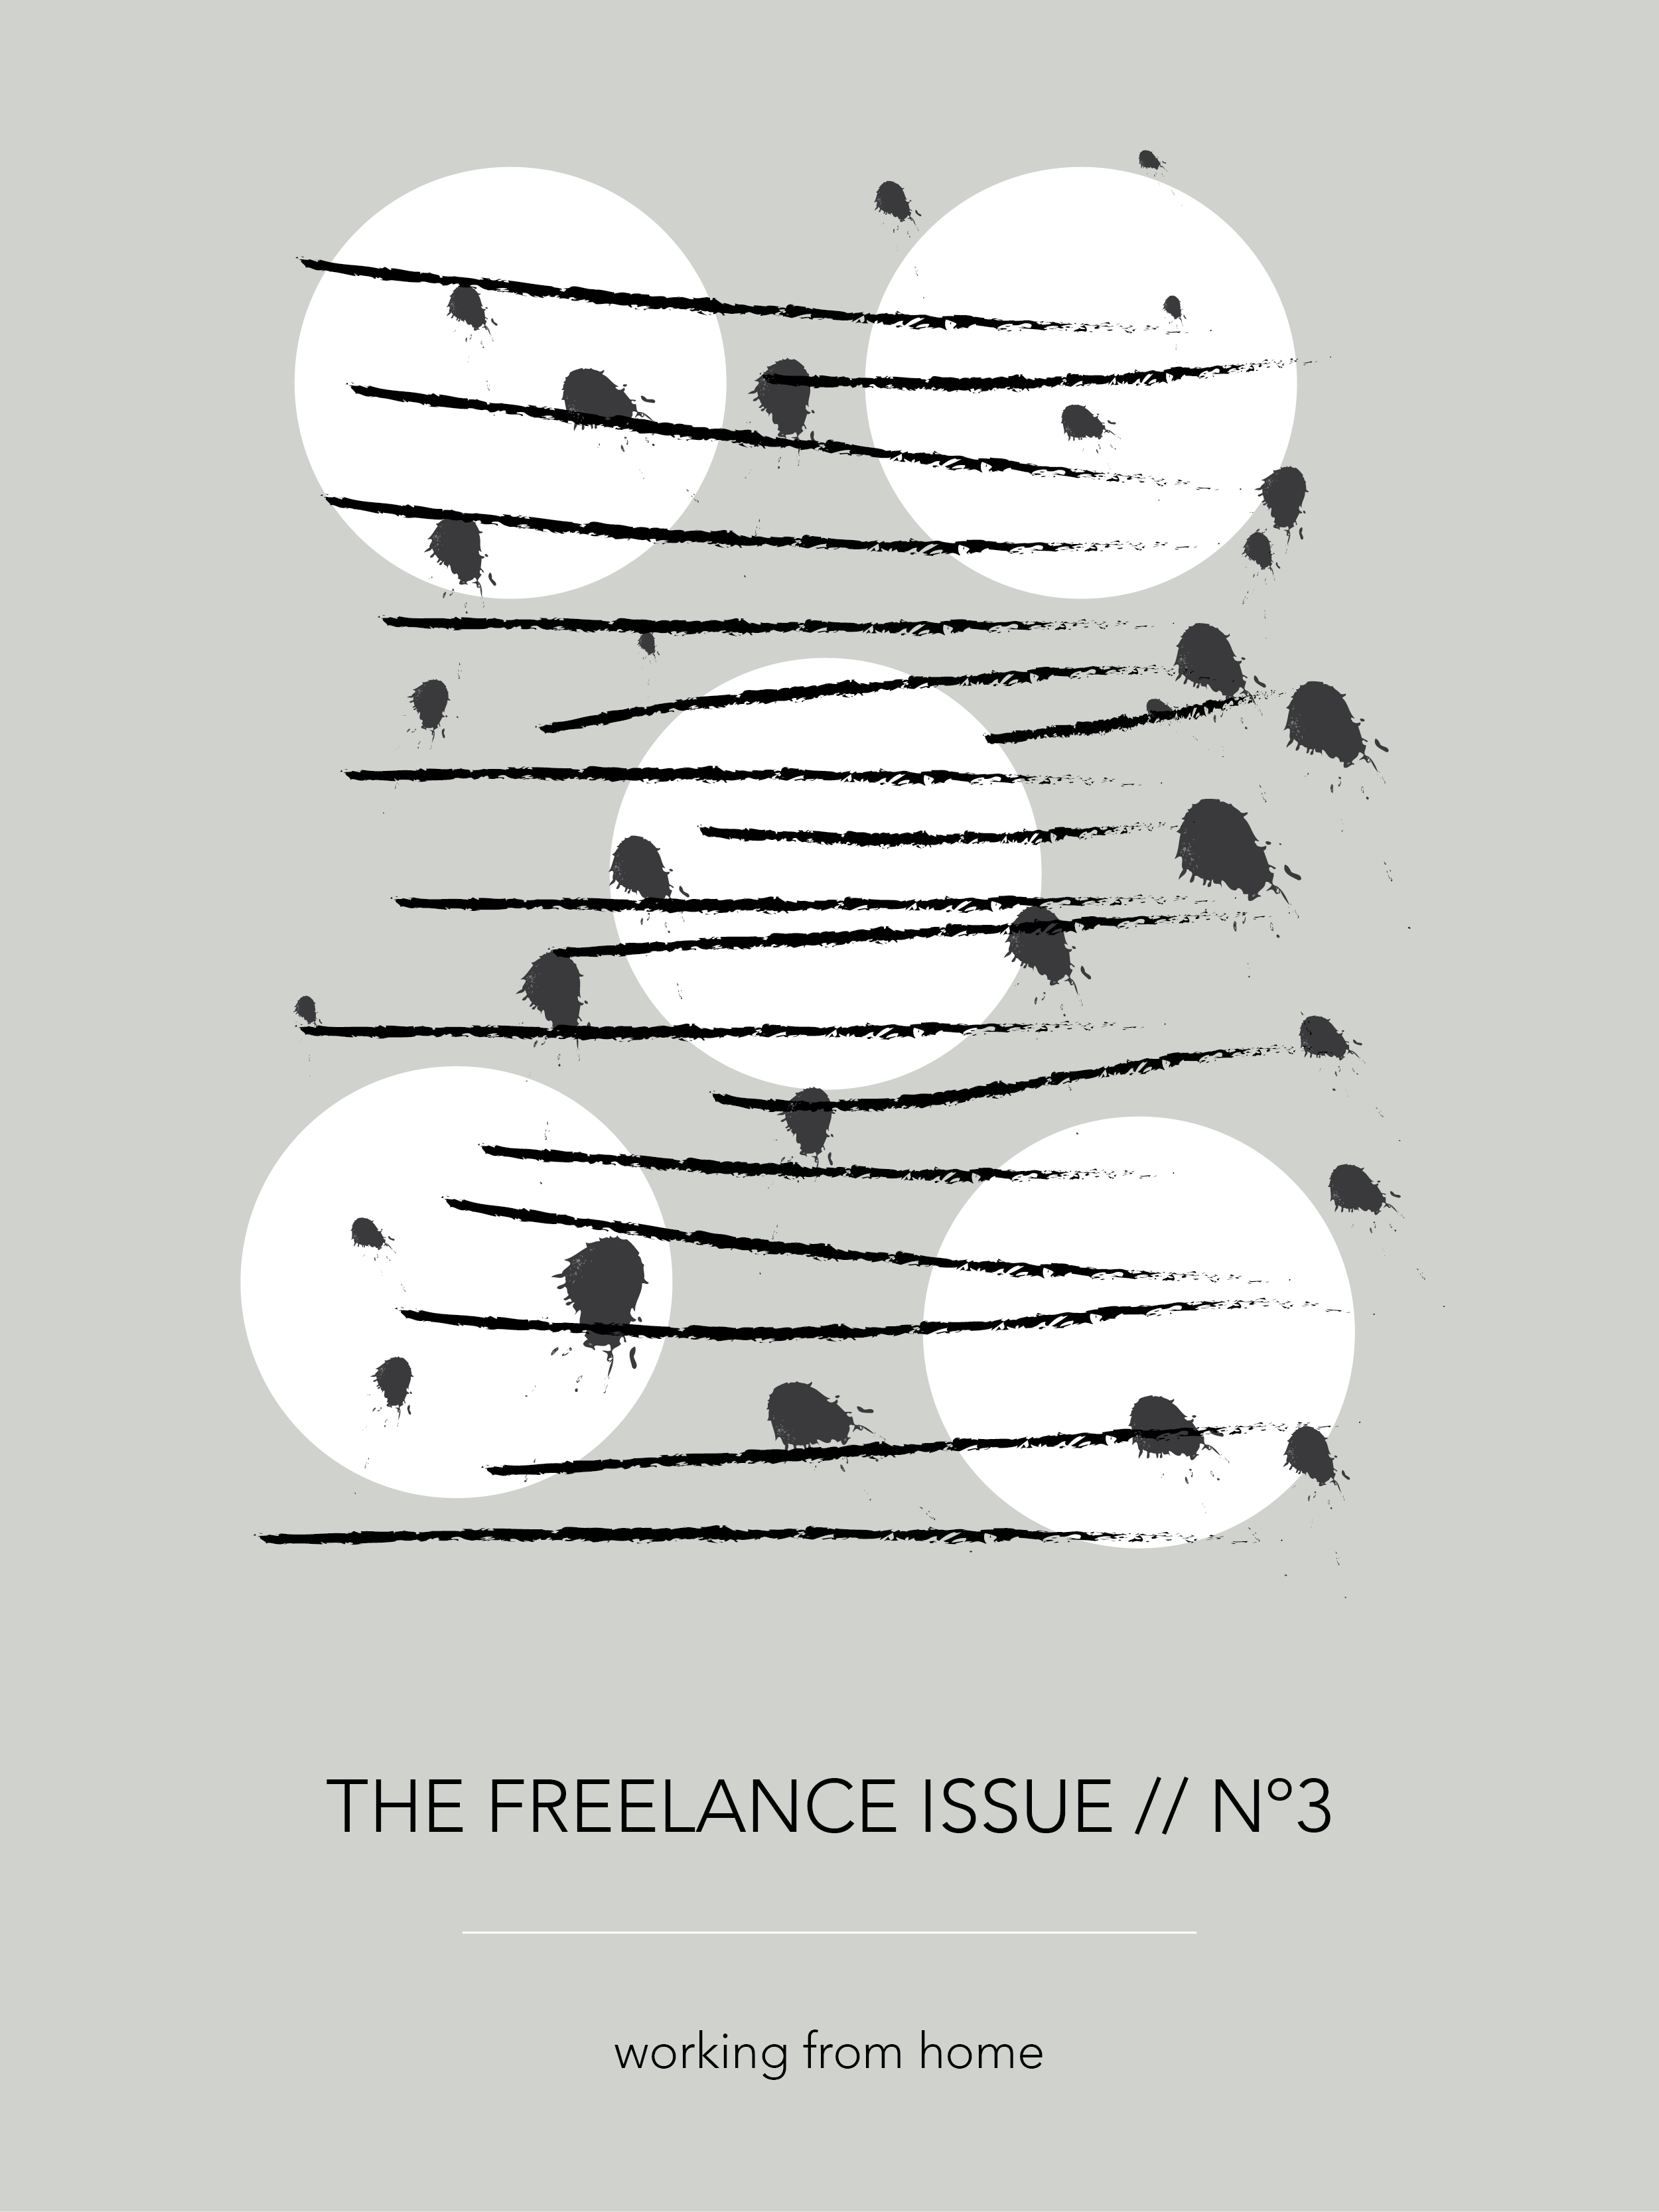 The Freelance Issue No. 3 - Working from Home, by Phylleli. Working from home and not getting distracted. Make it work for you, I share my tips here what works for me #design #graphicdesign #workfromhome #homeoffice #freelancedesigner #freelance #remotework #thefreelanceissue #blogger #blogging #phylleli